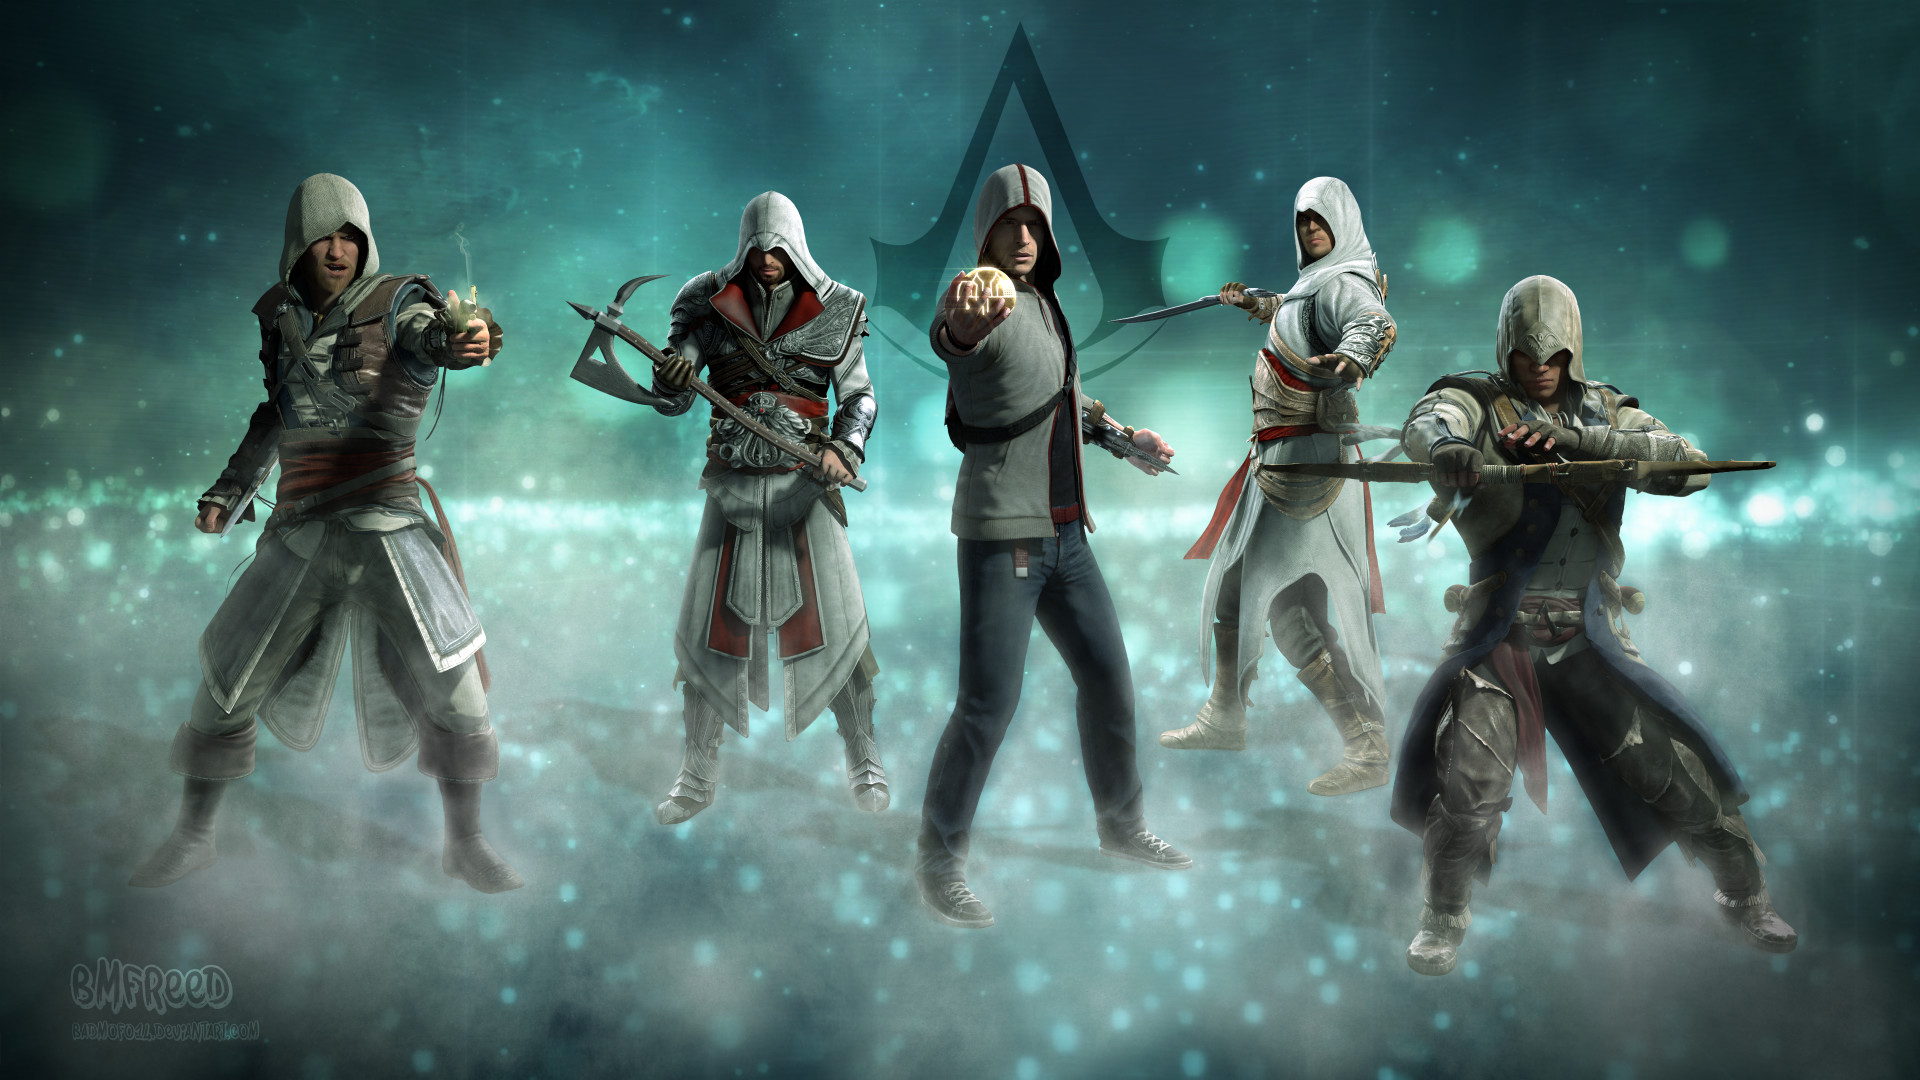 1920x1080 Assassins Creed Wallpaper Full Widescreen #009j51717g  px 4.27 MB  Games Assassins Creed